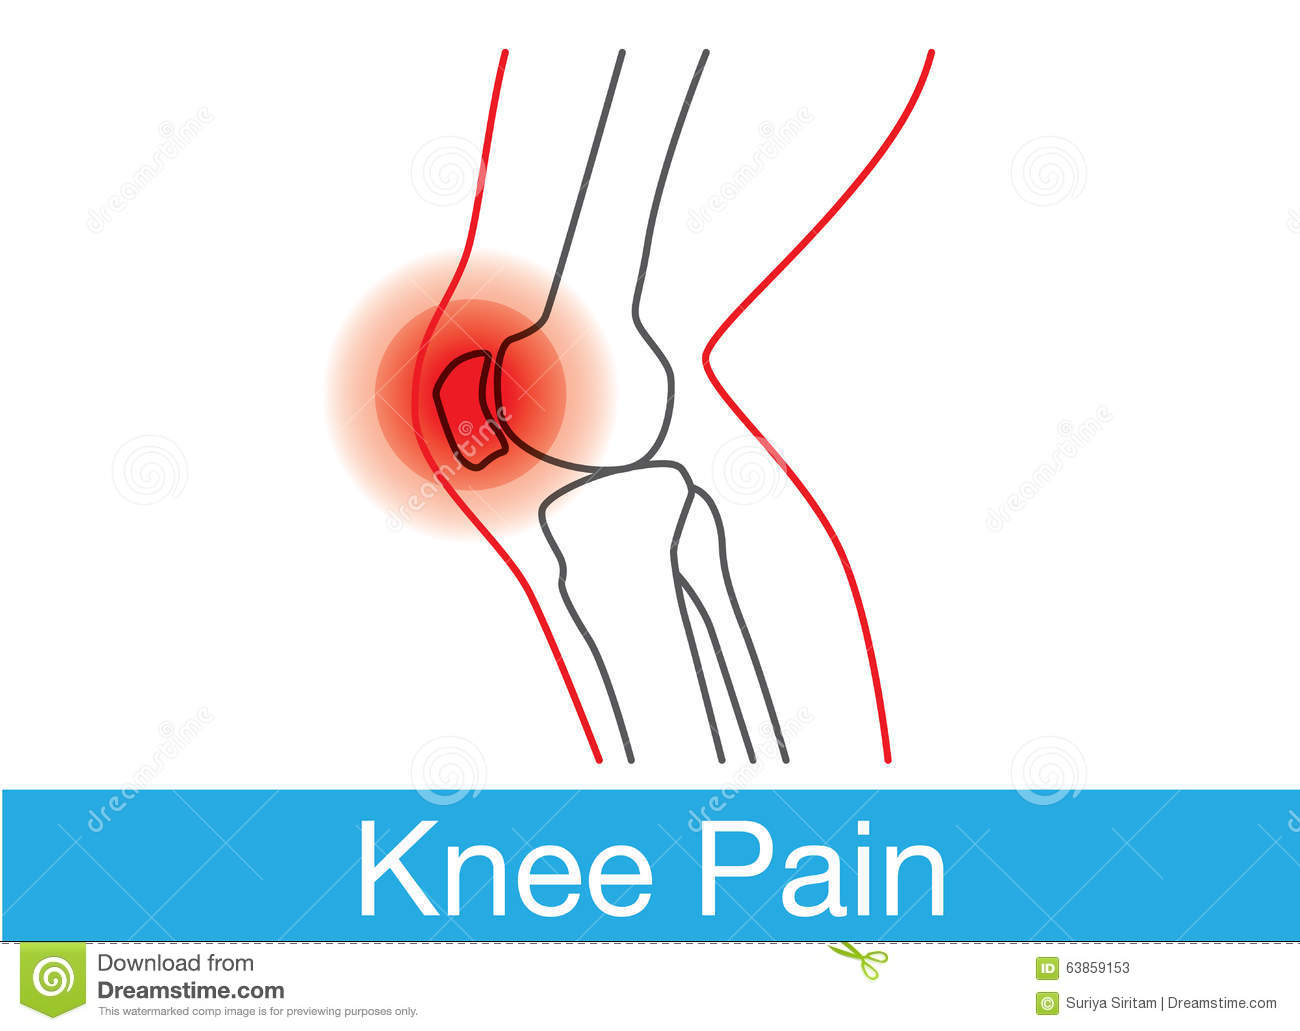 Knee pain outline stock vector illustration of doctor 63859153 knee pain outline pooptronica Image collections